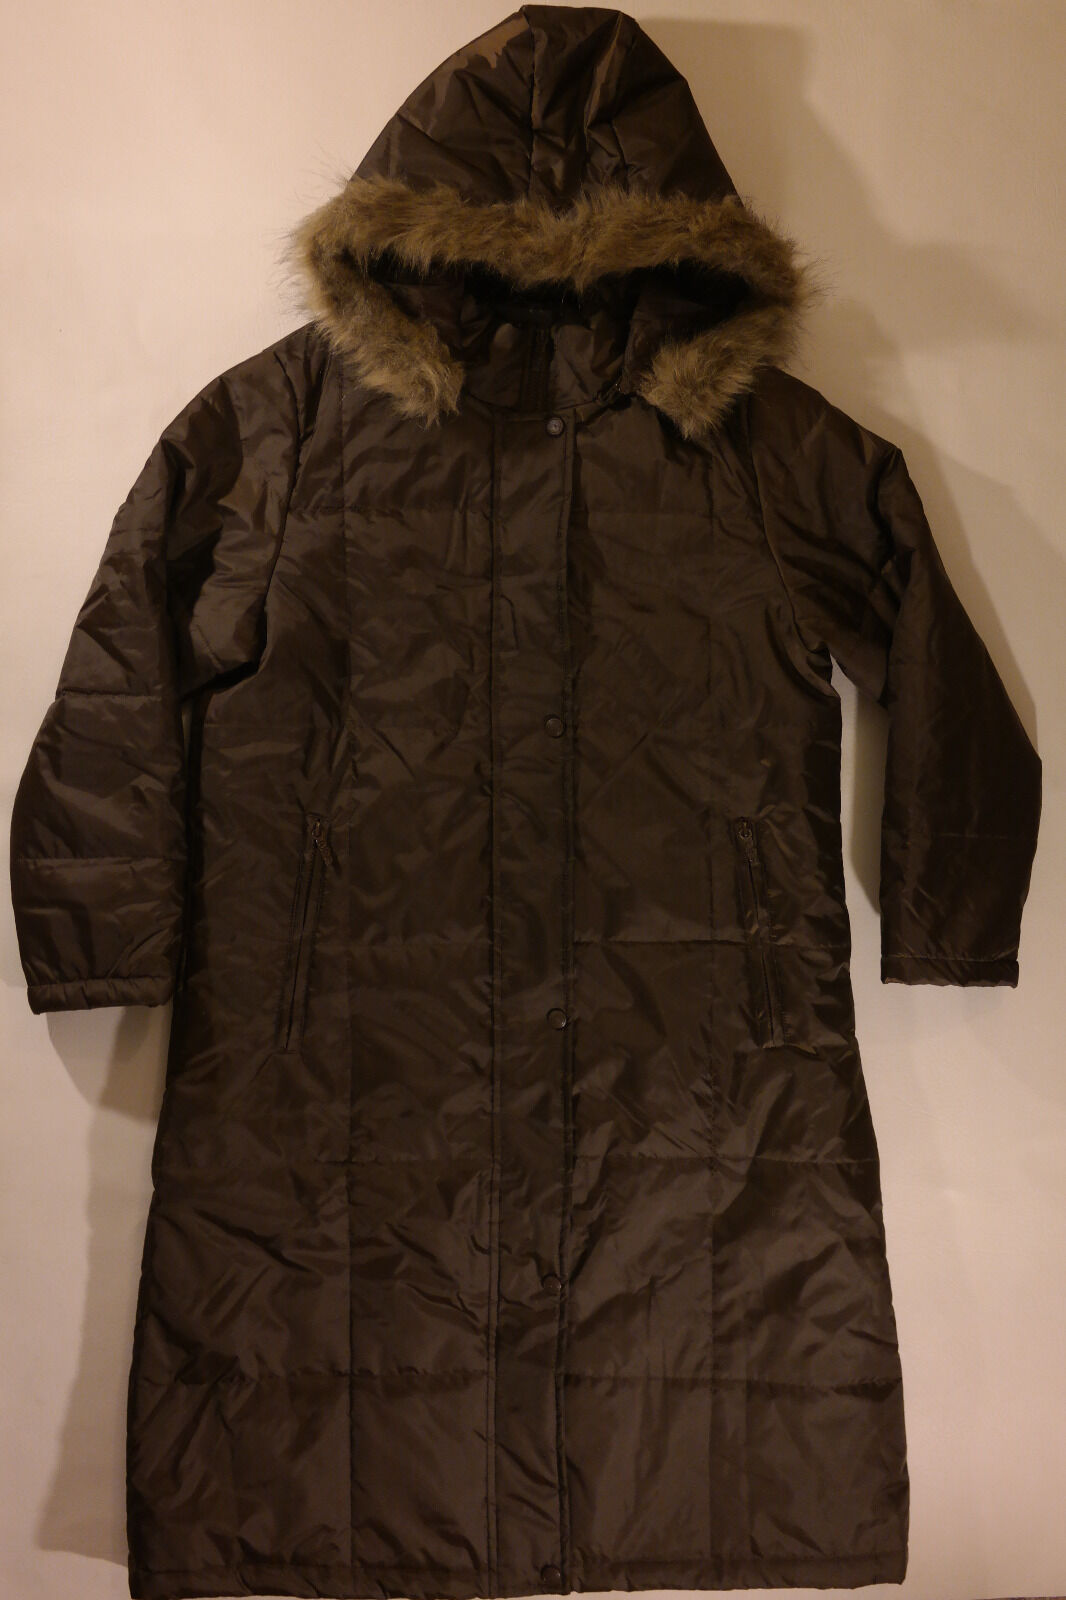 WOMEN'S S, LONG, BROWN PUFFER COAT W HOODIE BY TOTES  100% POLYESTER.